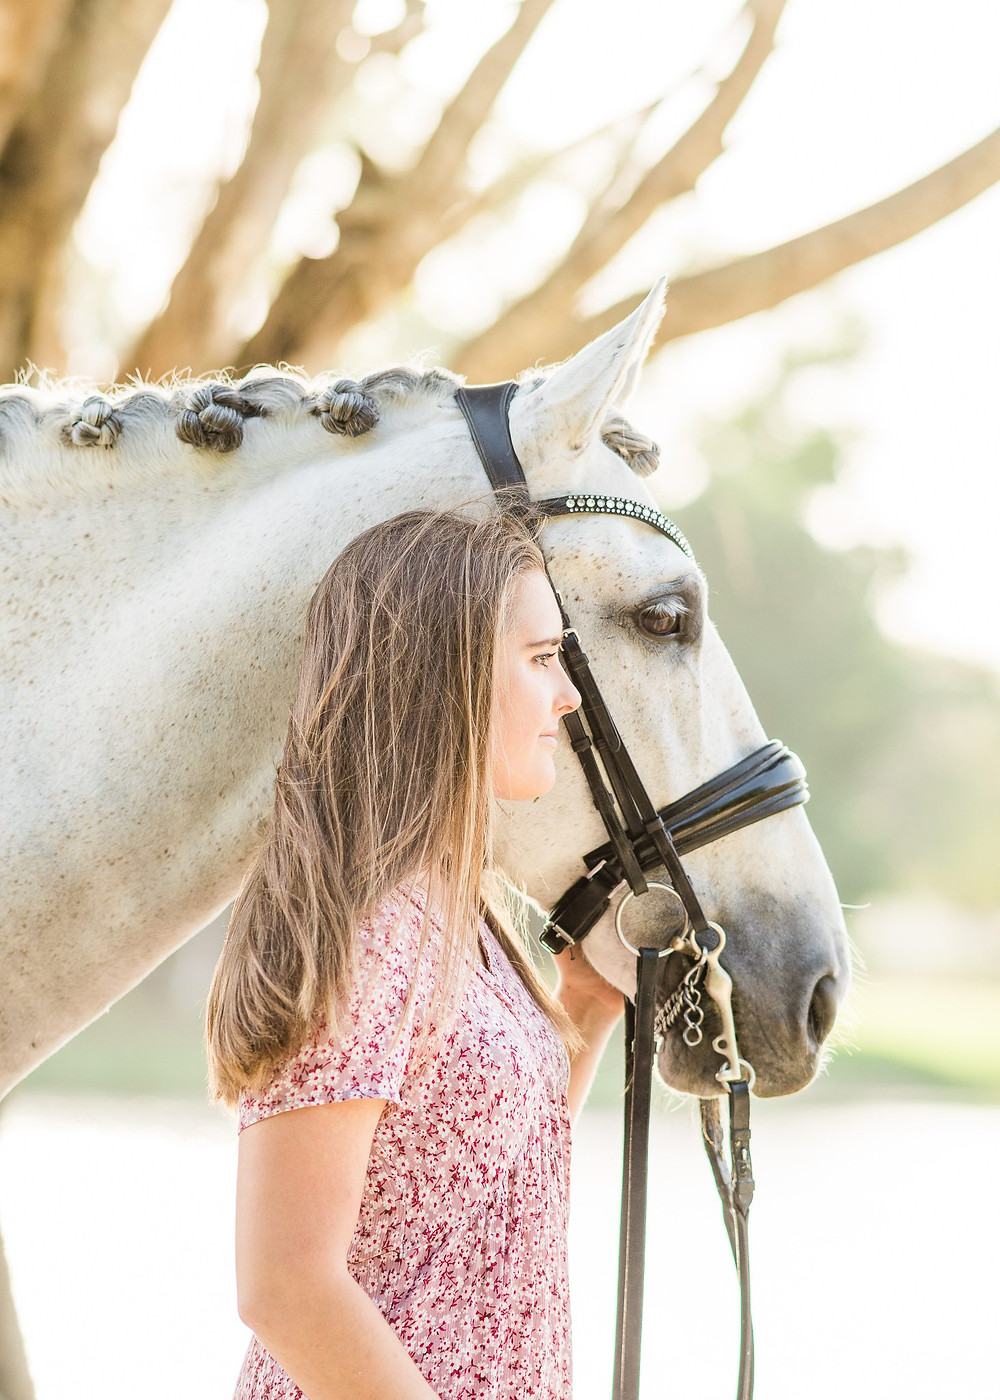 Jordan, a working student at Helgstrand Dressage standing next to her grey Andalusian stallion both looking off in the distance. A headshot from waist up